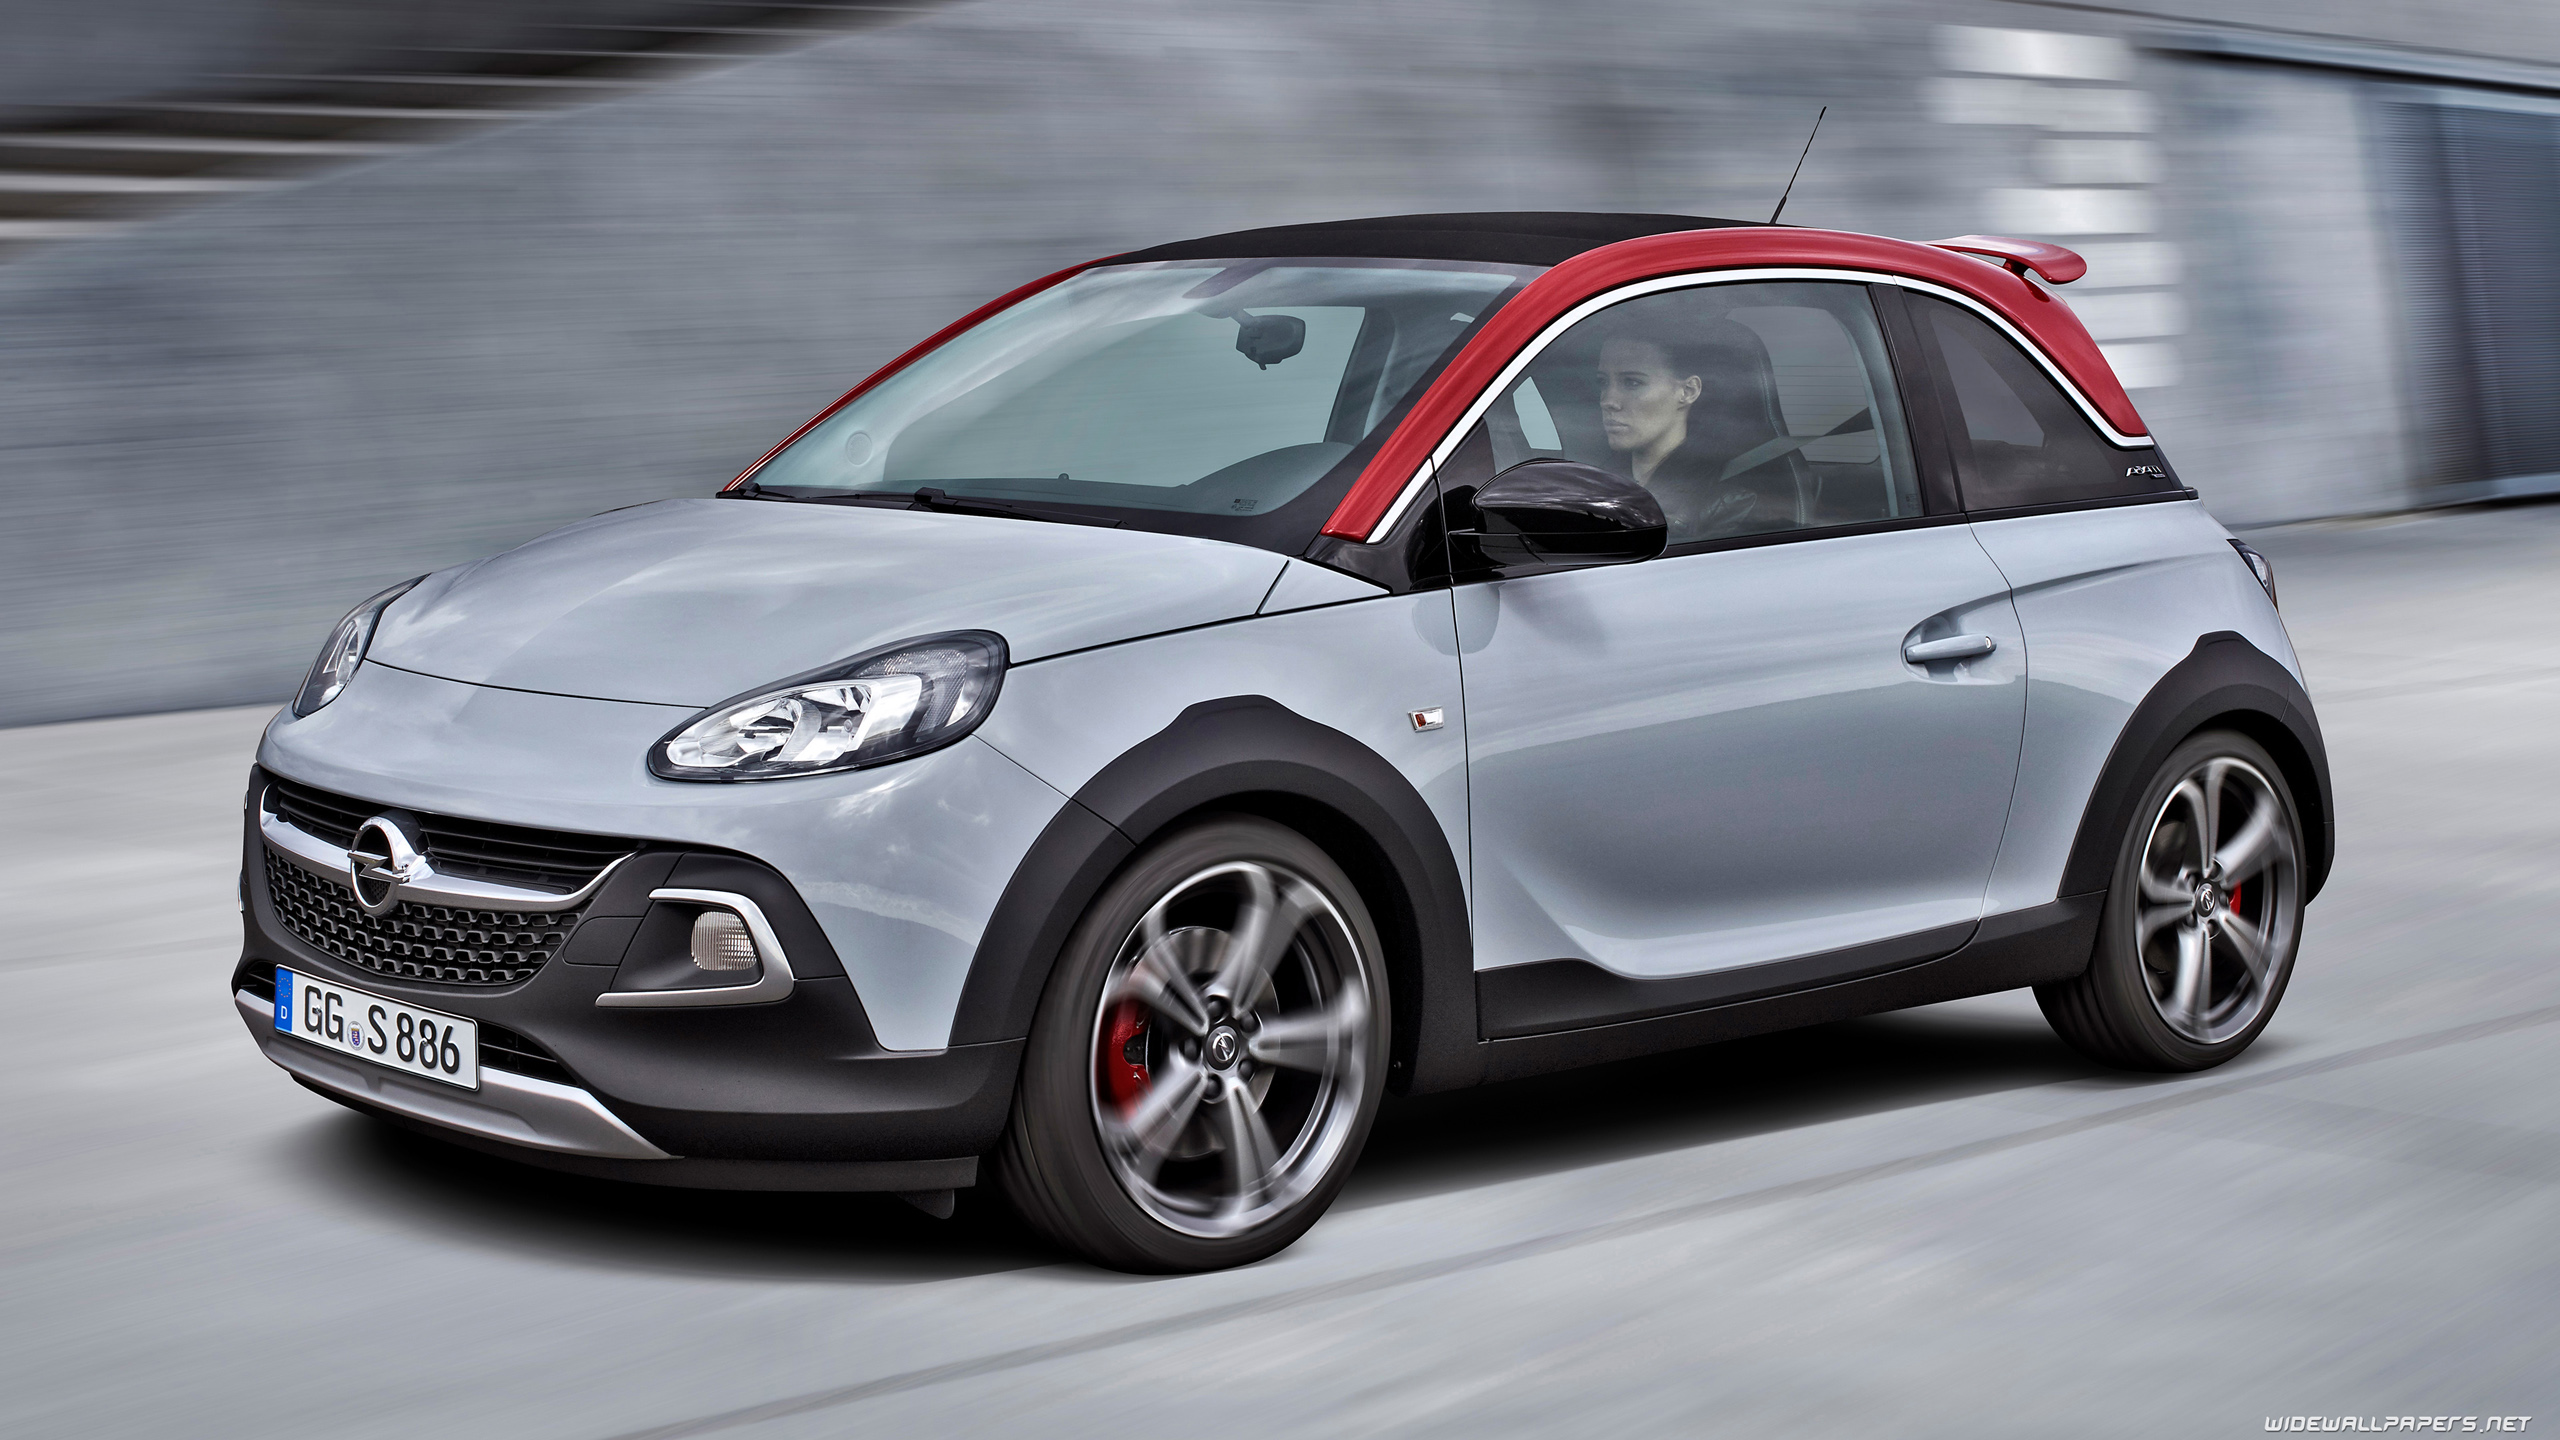 opel adam cars desktop wallpapers 4k ultra hd. Black Bedroom Furniture Sets. Home Design Ideas